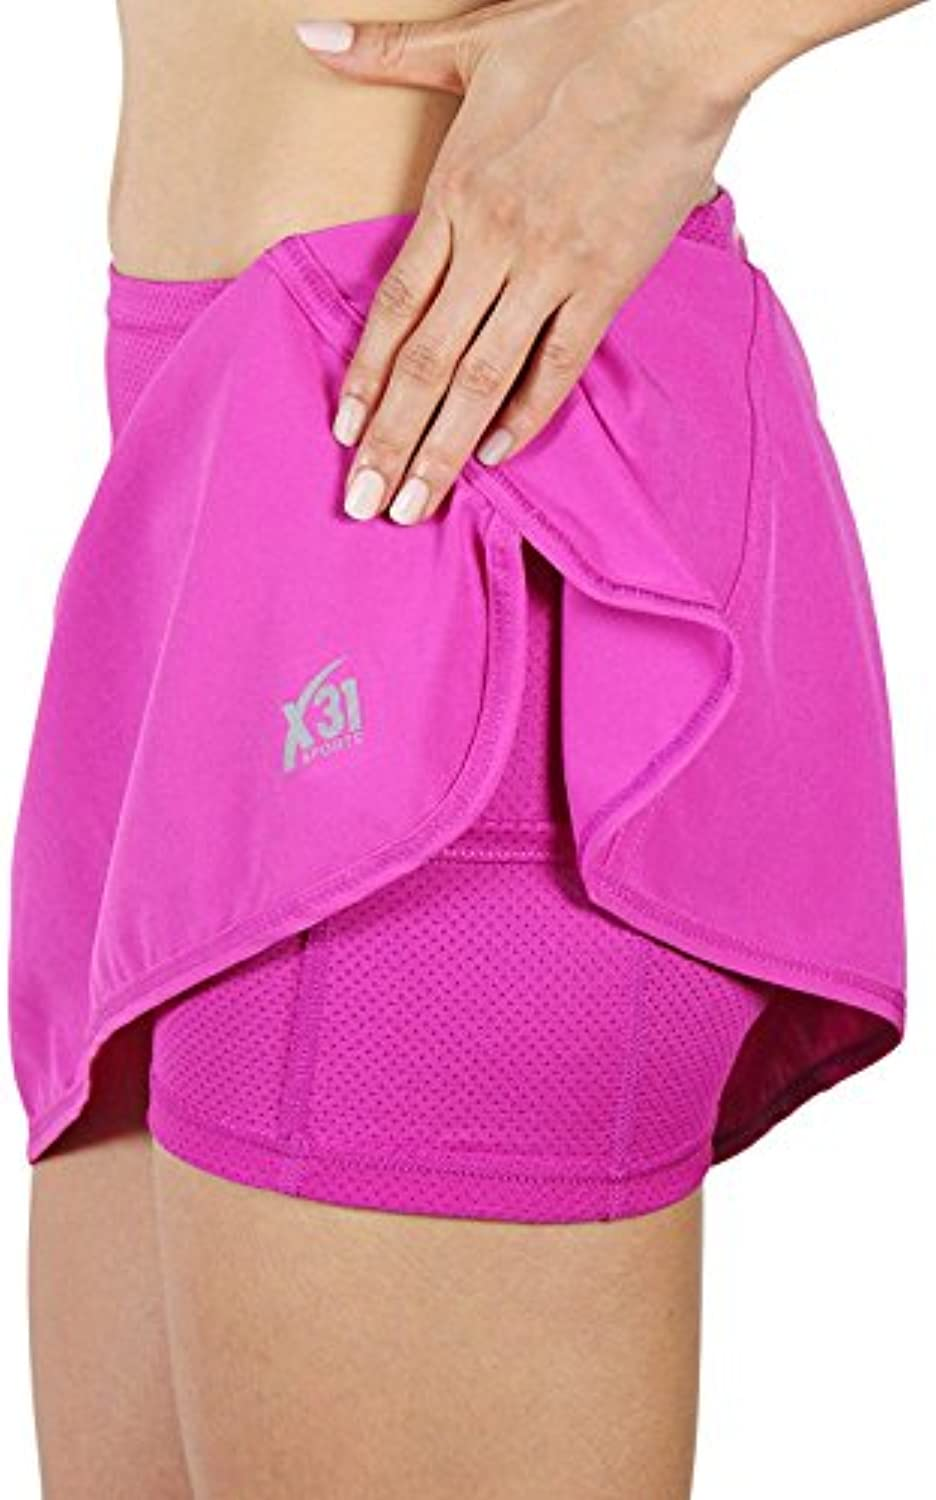 X31 Sports Running Skirt, Skort with Shorts and Zipper Pocket